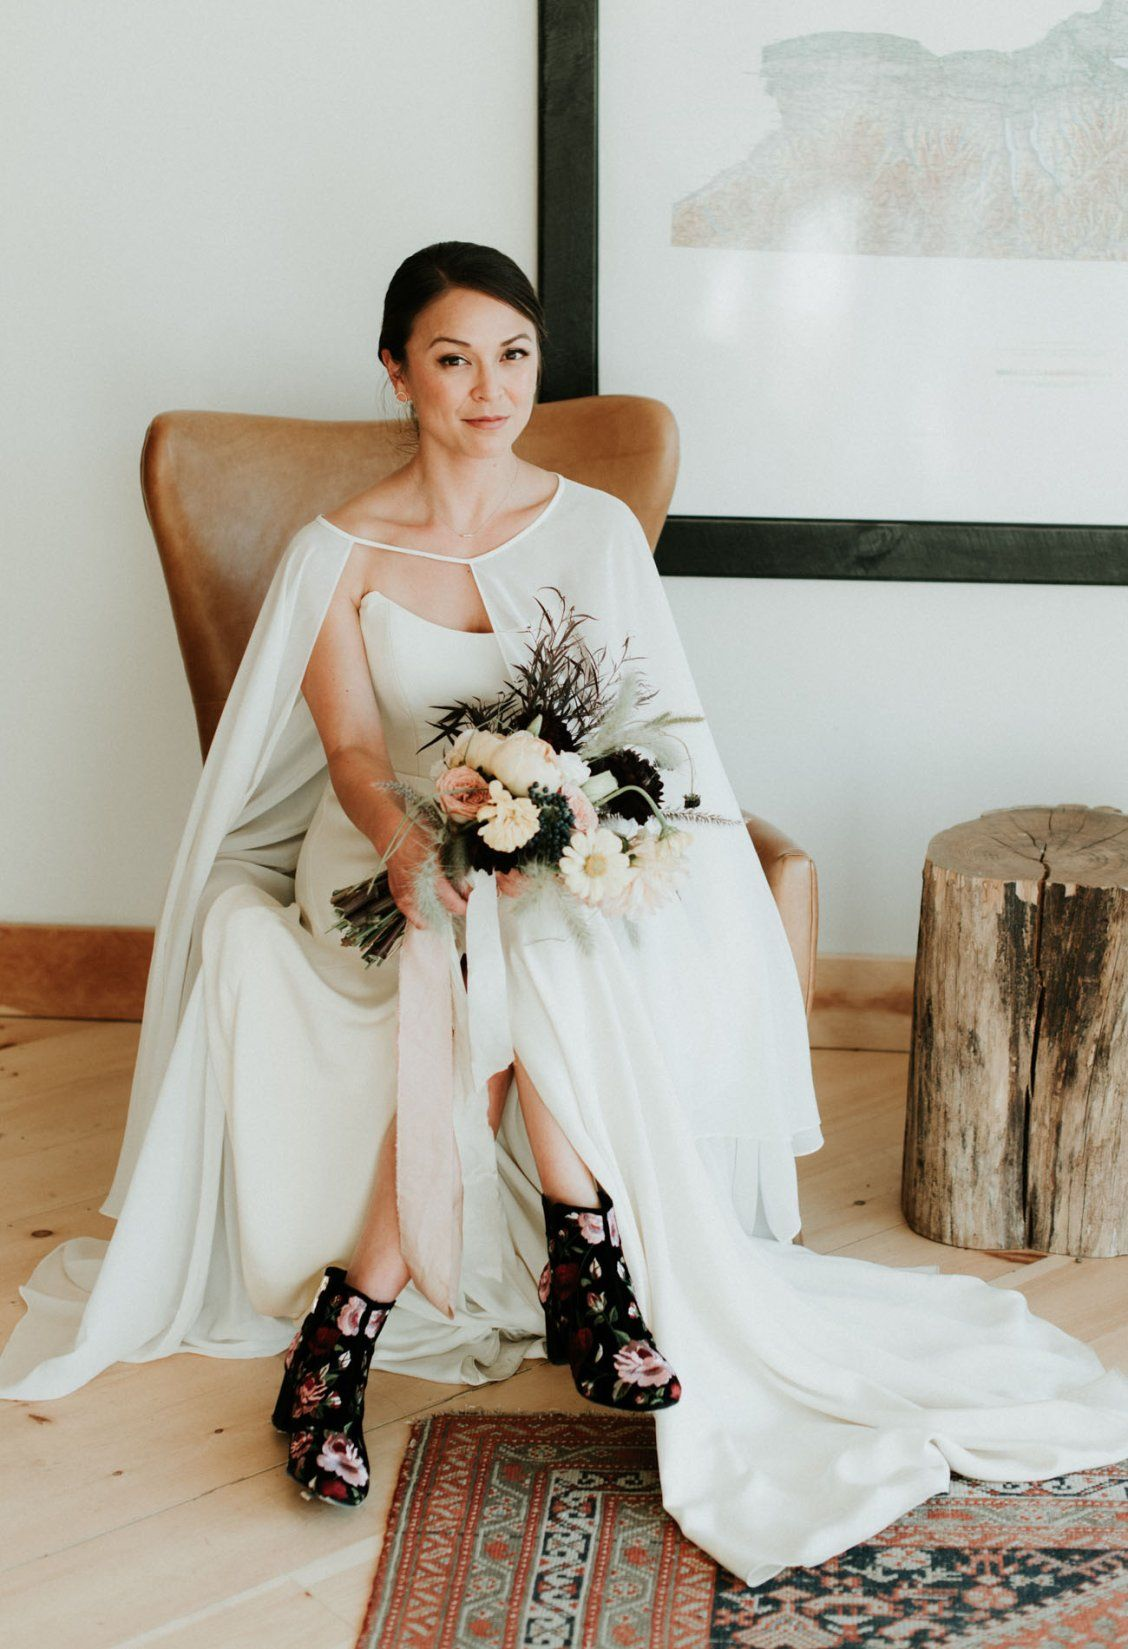 Rugged Relaxed And Urban An Autumnal Wedding In A Catskills